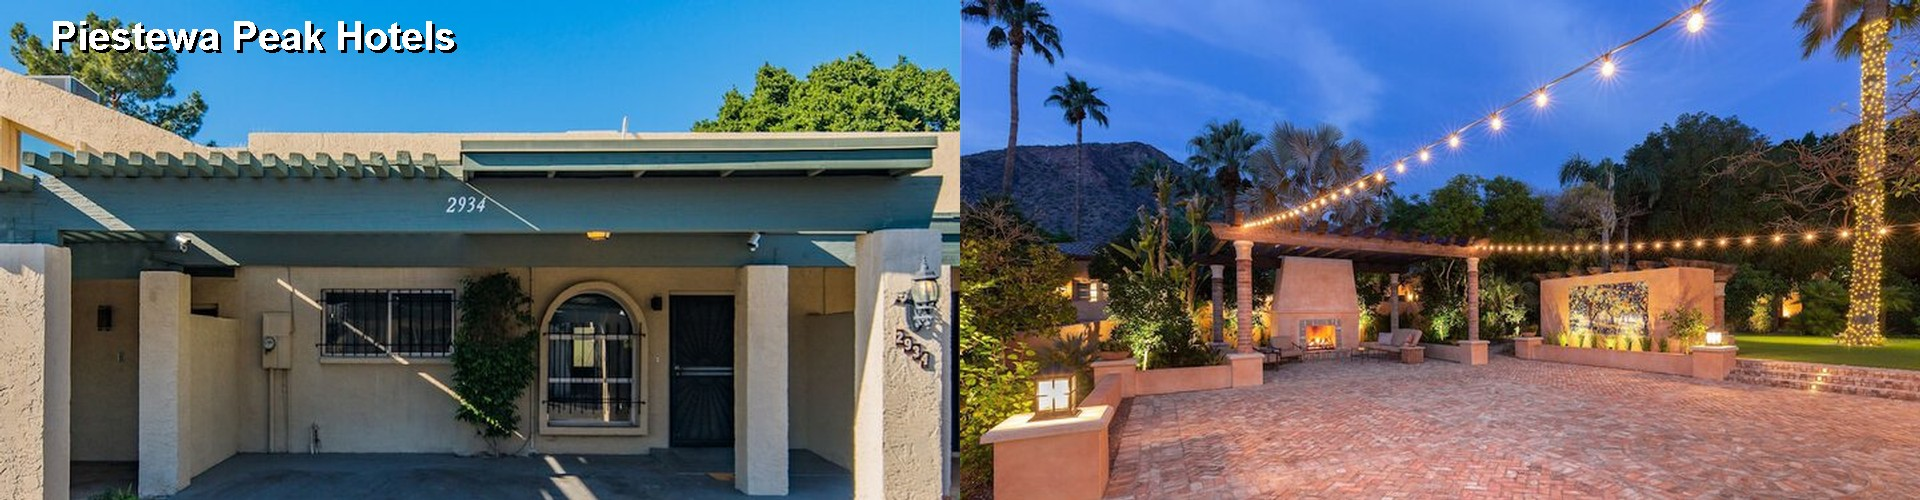 5 Best Hotels near Piestewa Peak